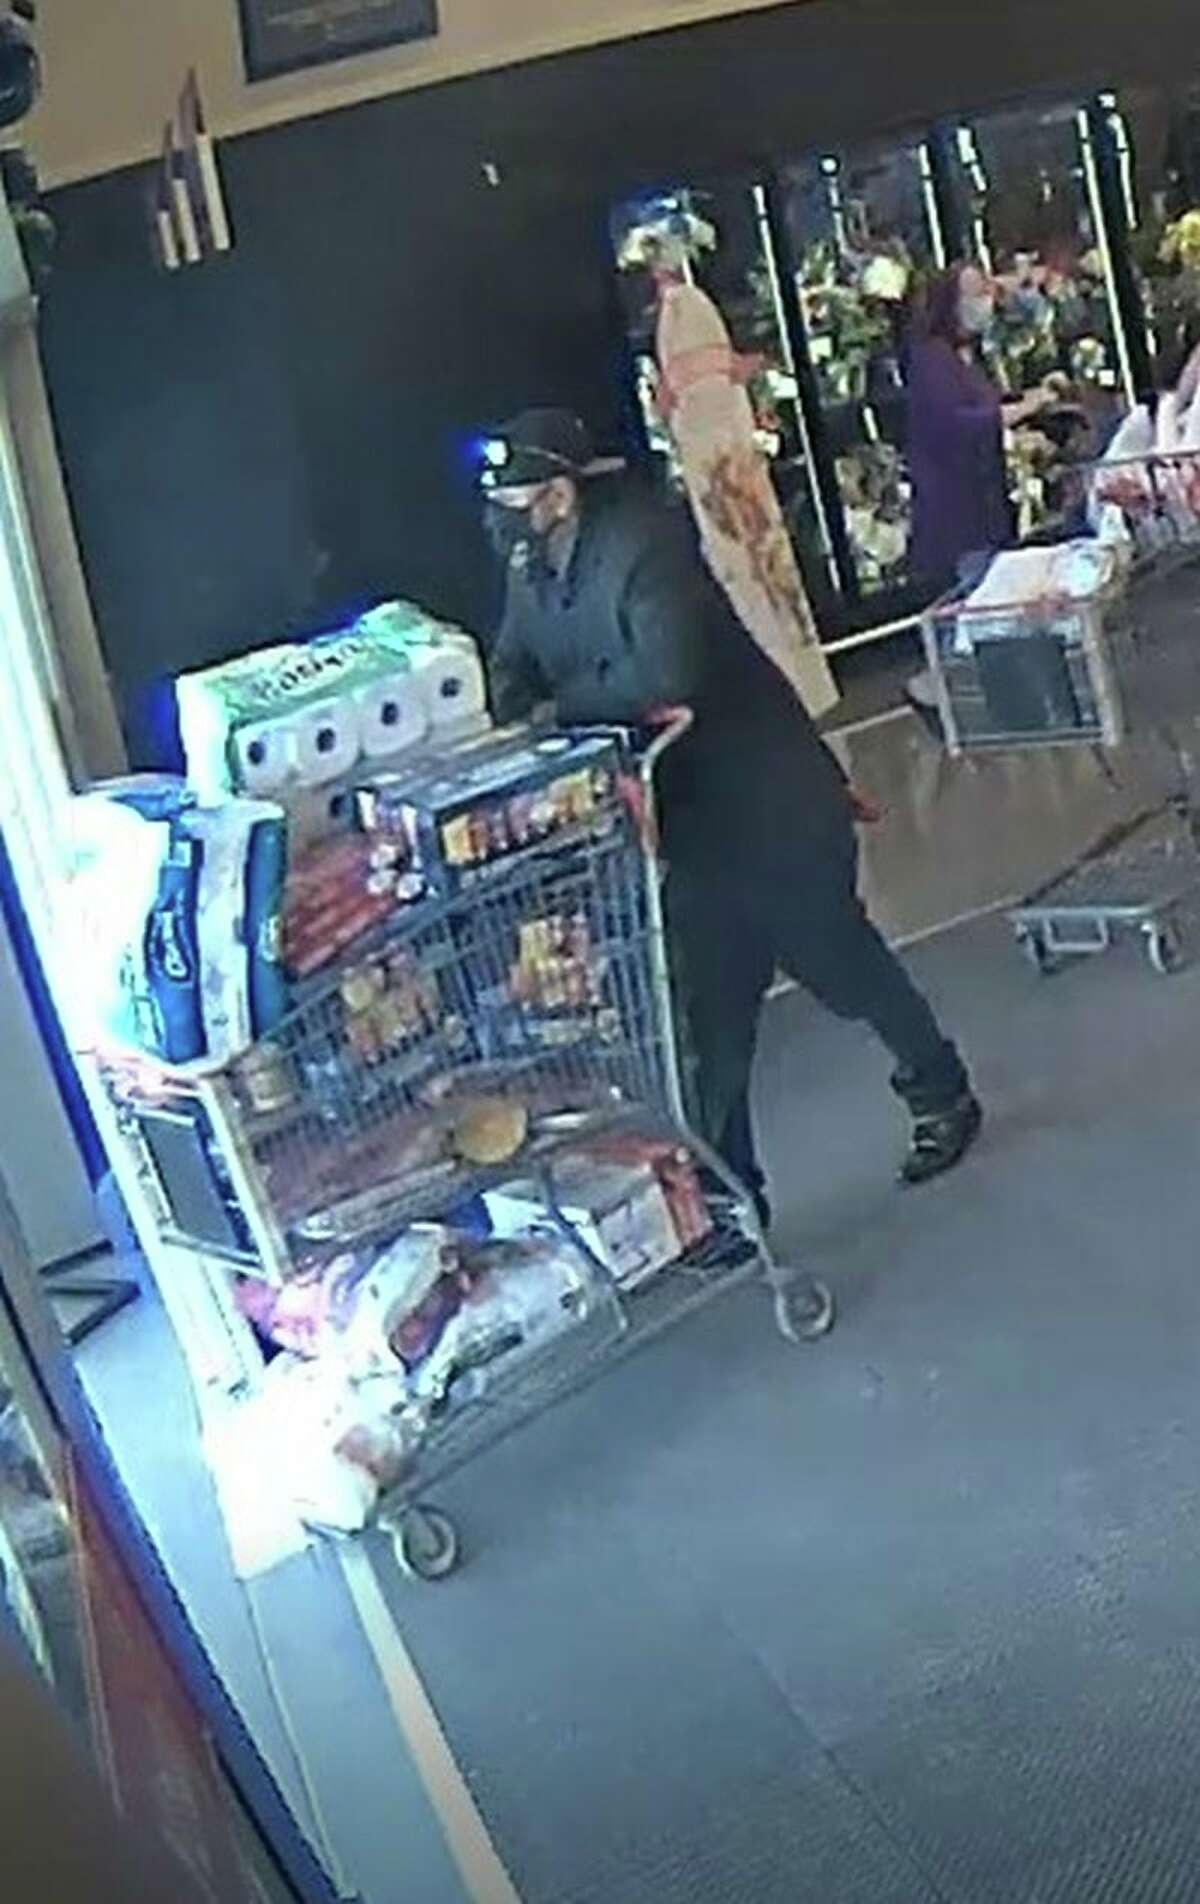 The Midland Police Department is seeking the public's help in identifying a man who entered H-E-B off Loop 250 on May 11 and stole approximately $911 worth of groceries, according to the MPD Facebook page.